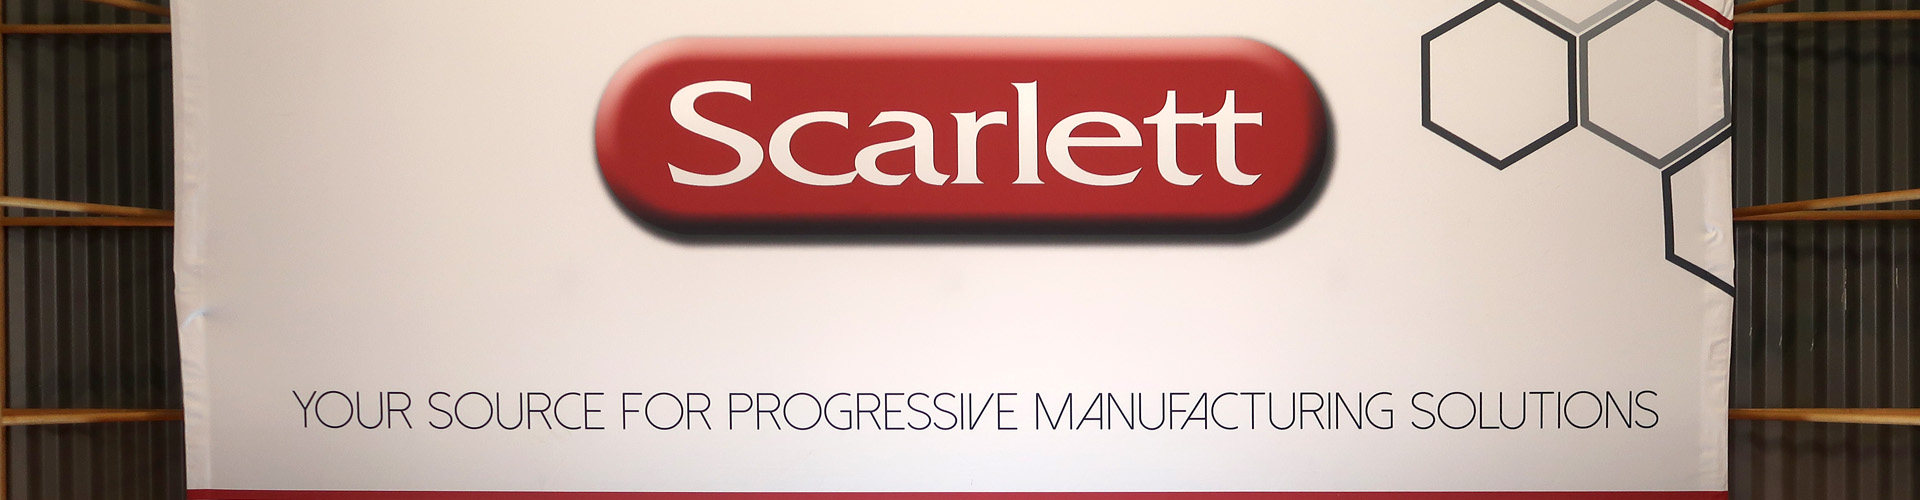 Scarlett: Your Source for Progressive Manufacturing Solutions